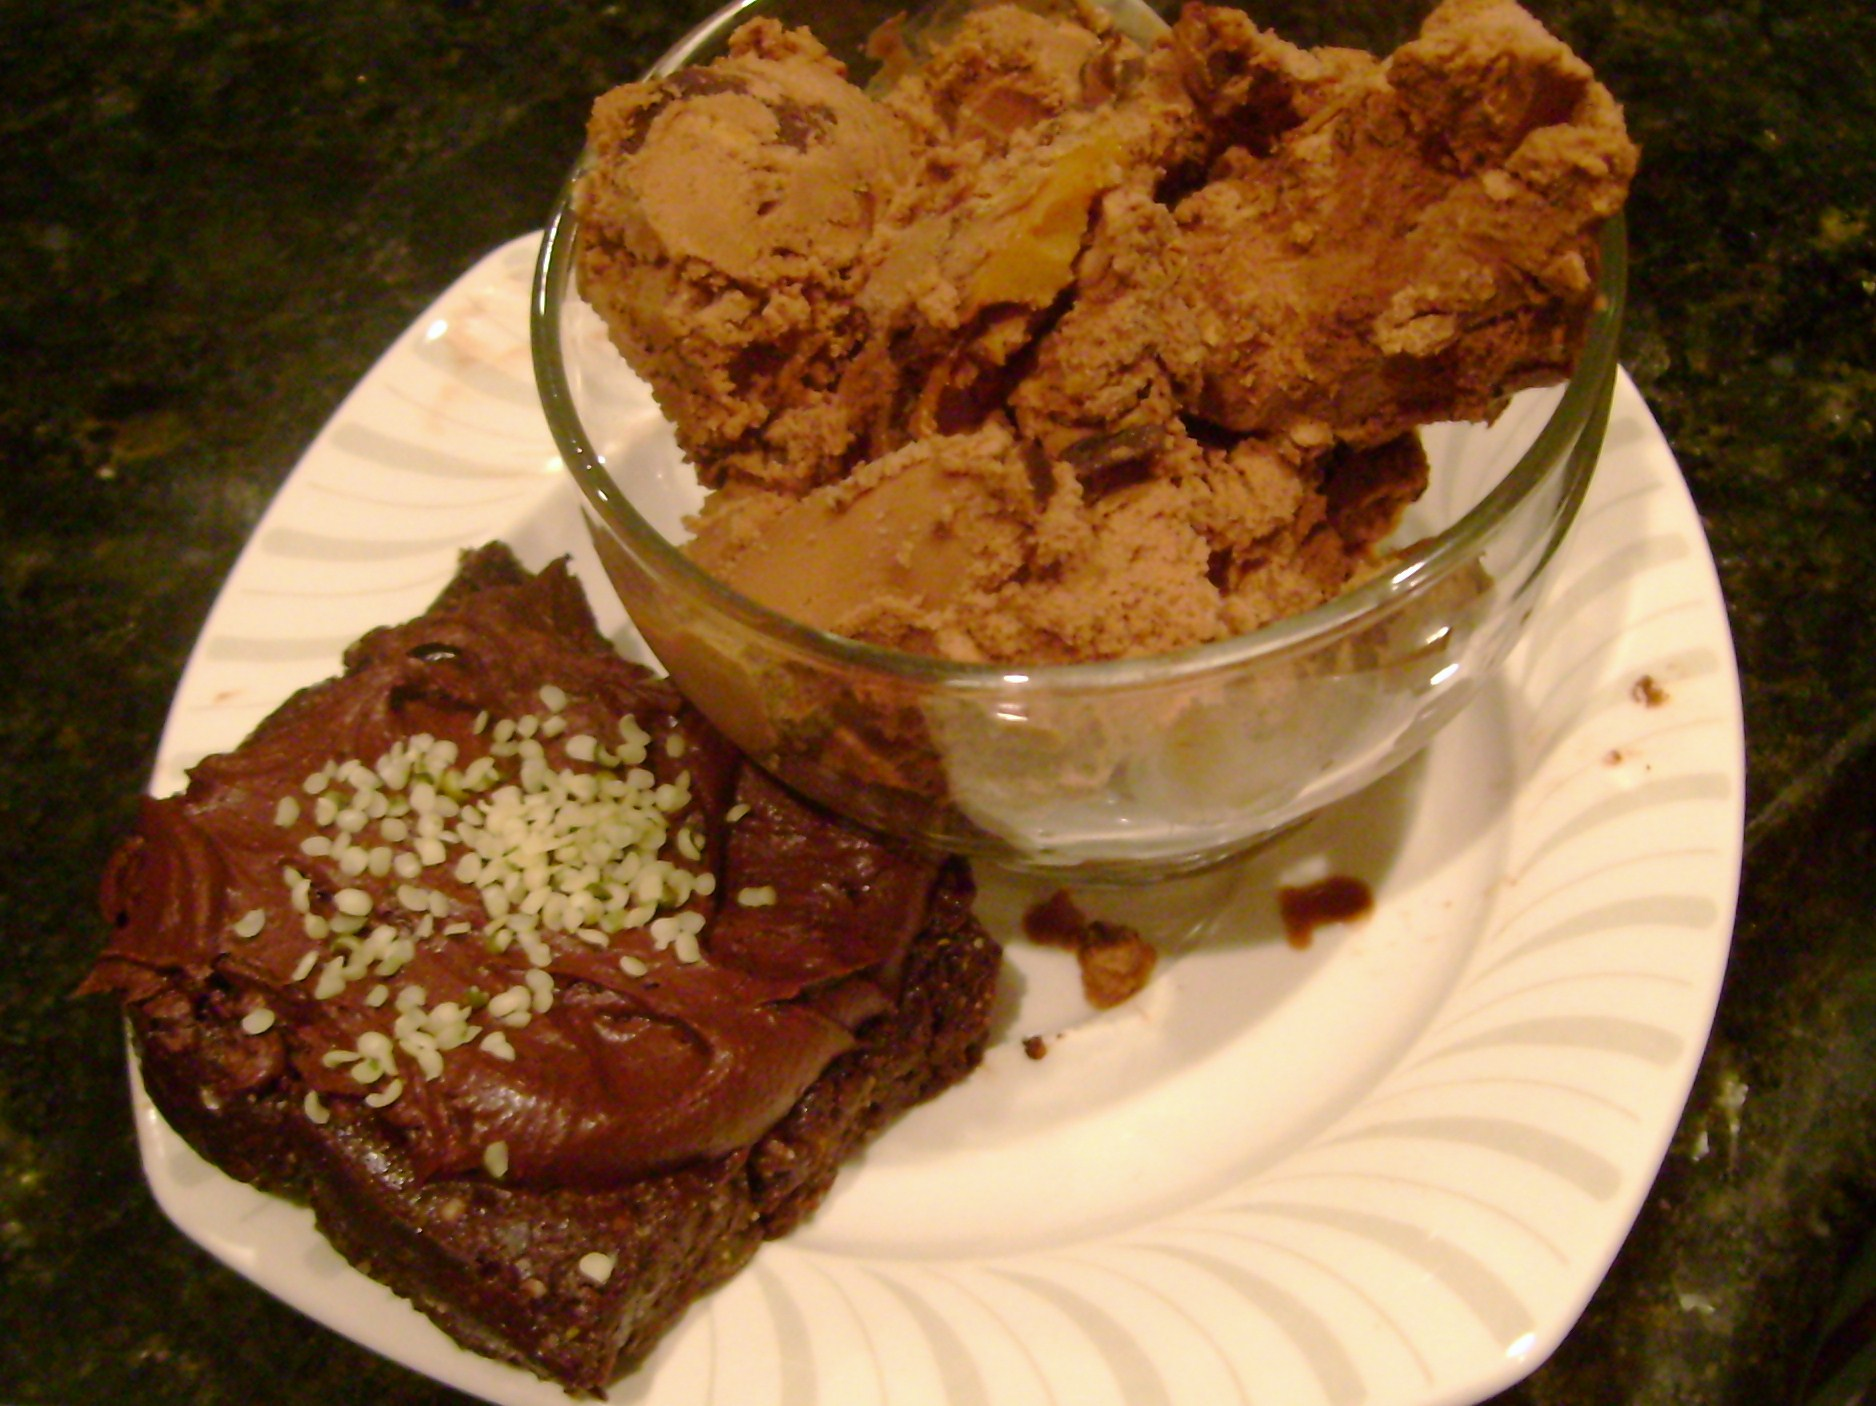 Raw Vegan Brownie With Raw Chocolate Frosting, So Delicious Chocolate Peanut Butter Swirl Coconut Milk Ice Cream